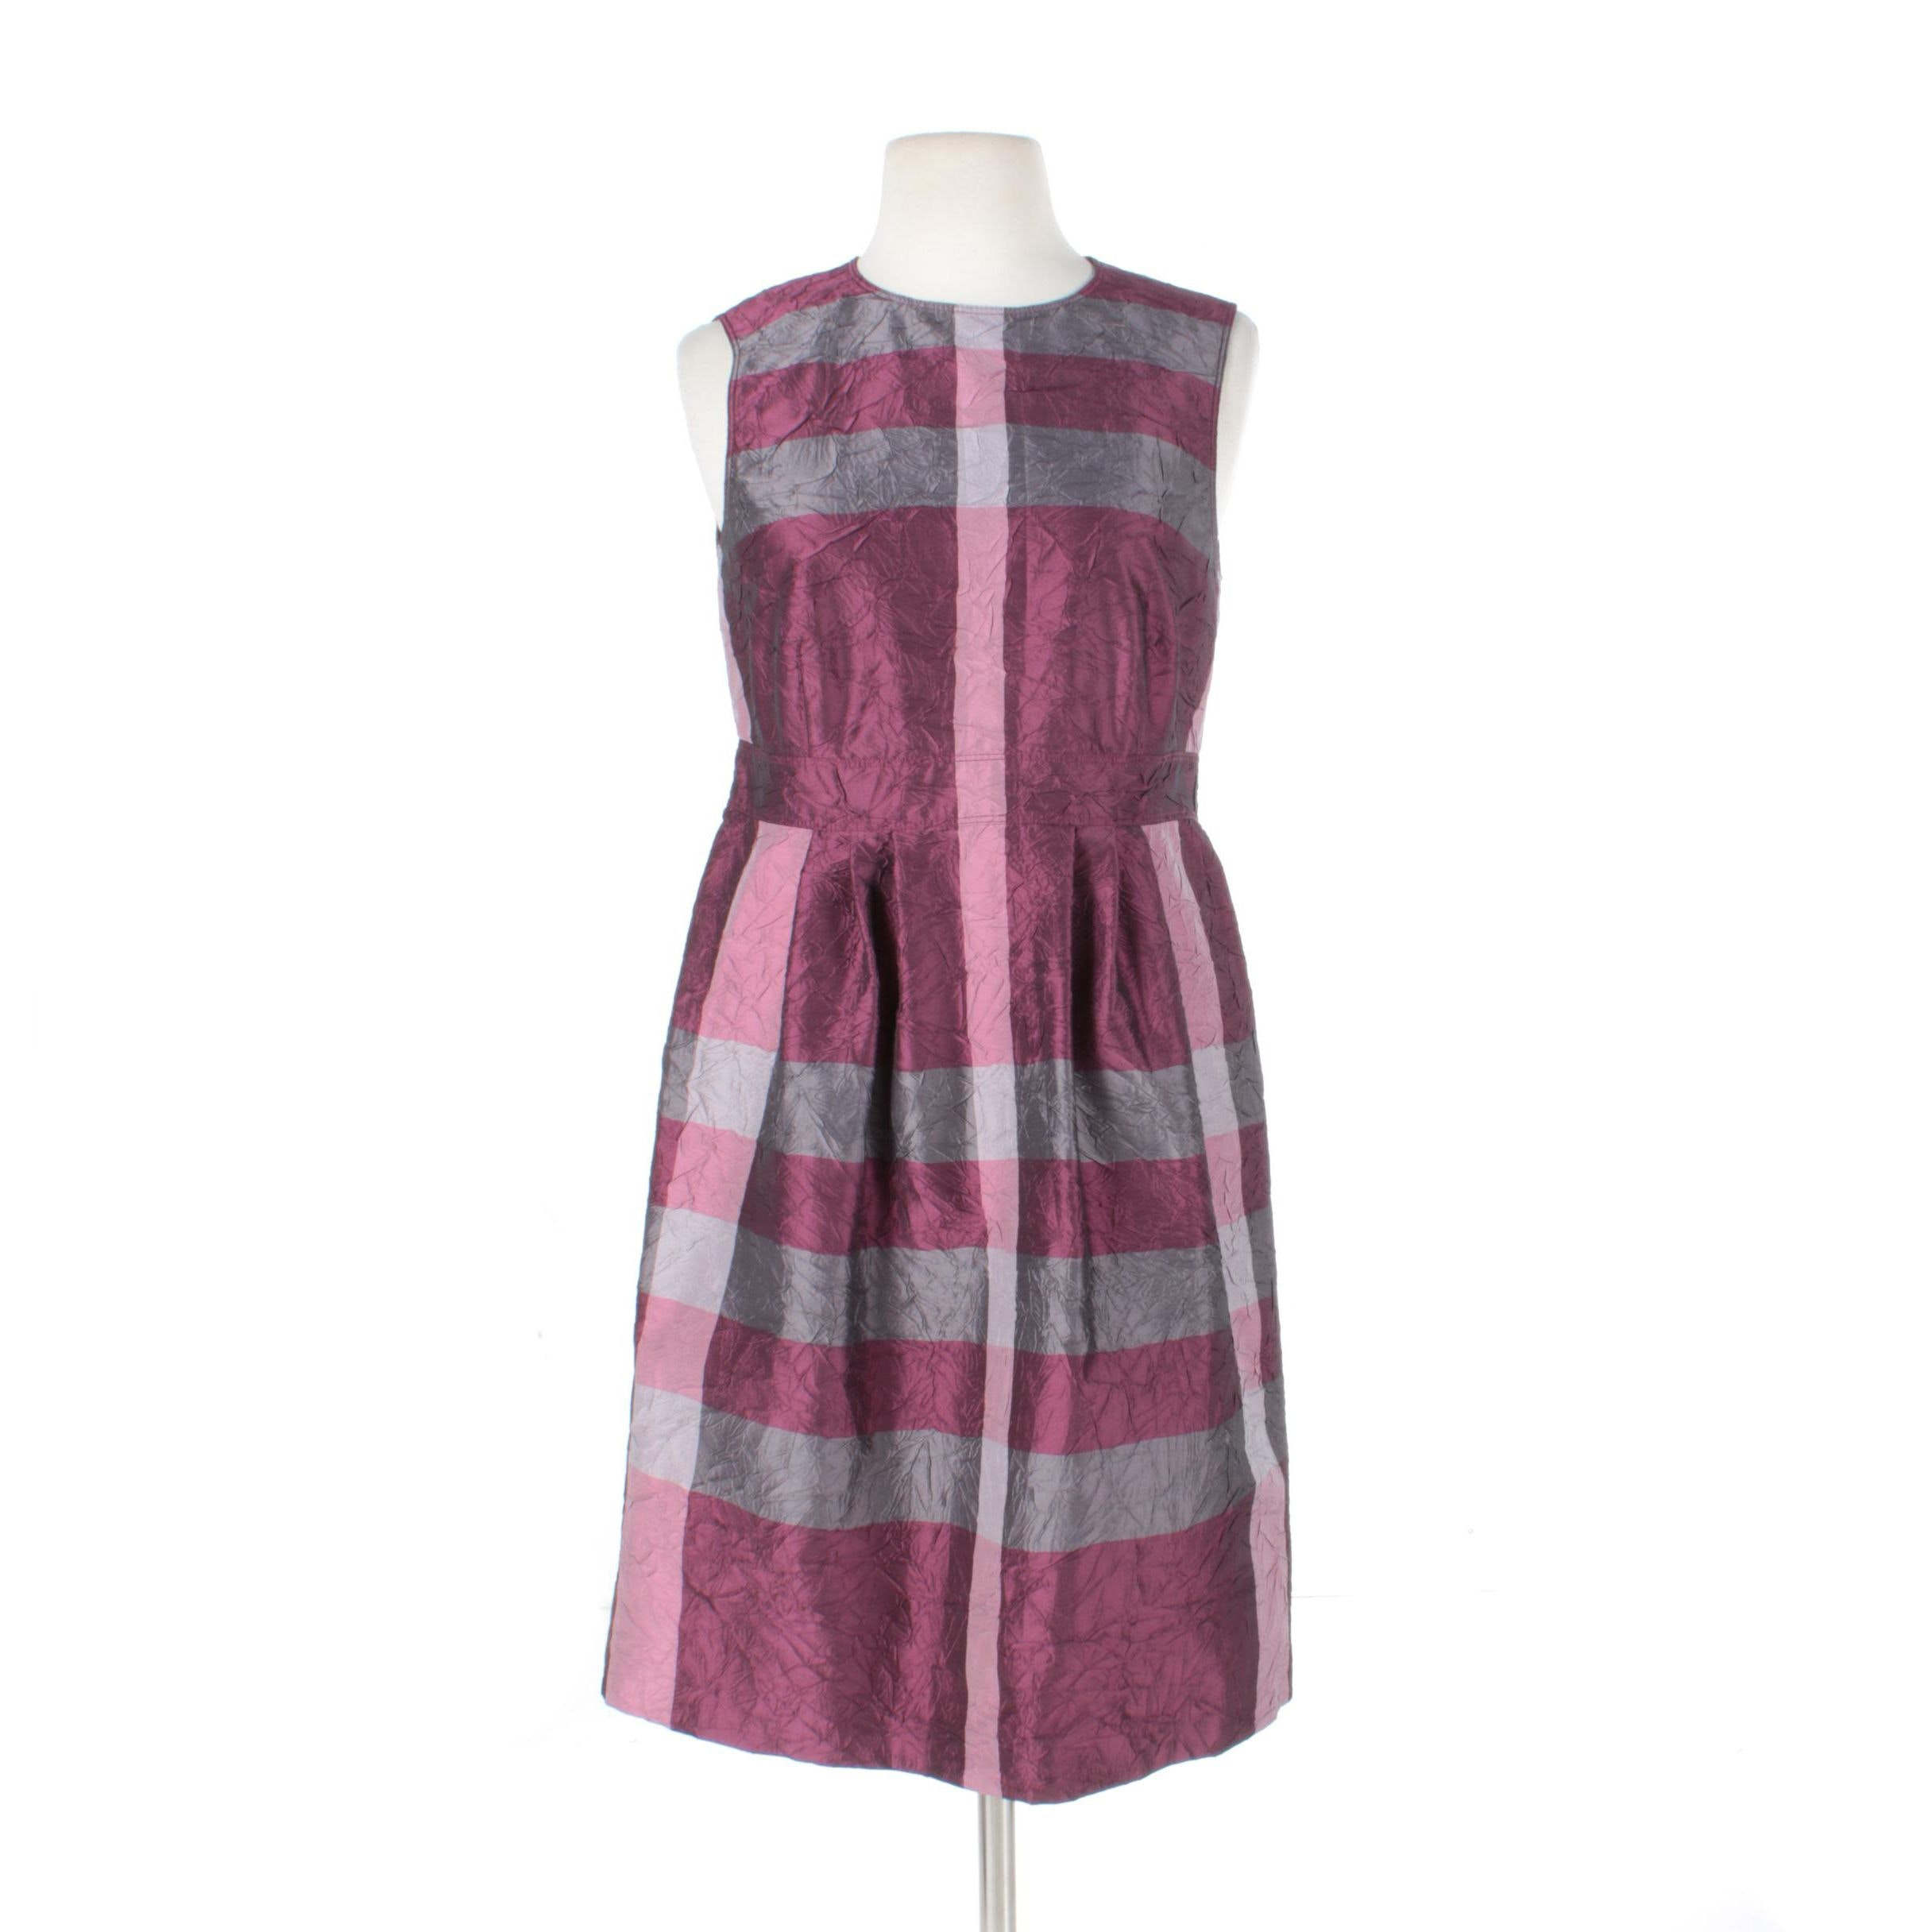 Women's Burberry London Sleeveless Dress